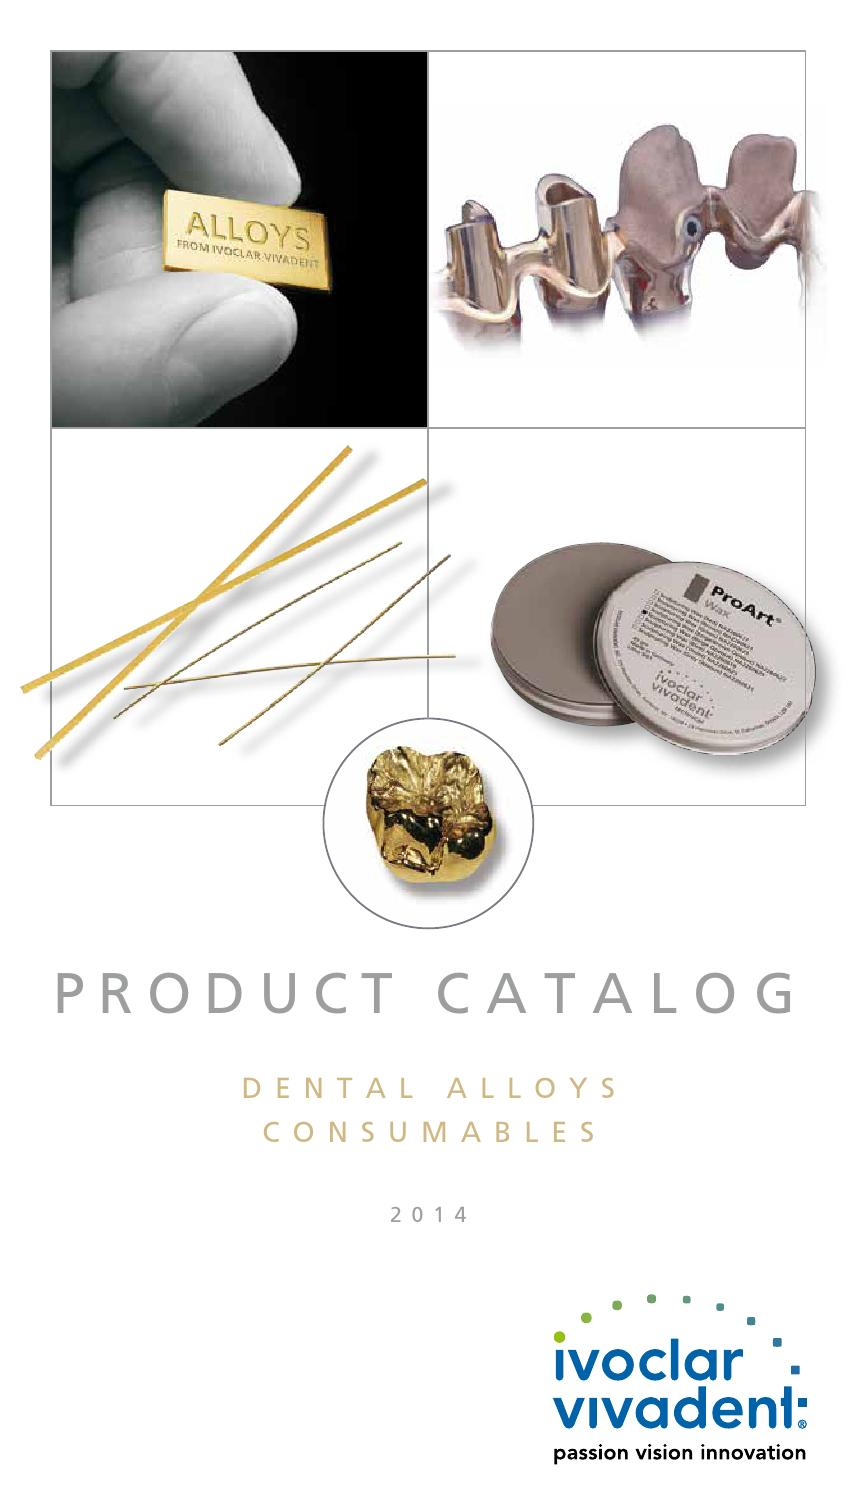 Dental Alloys And Consumables 2014 By Ivoclar Vivadent Issuu Wiring Diagram Omc 583653